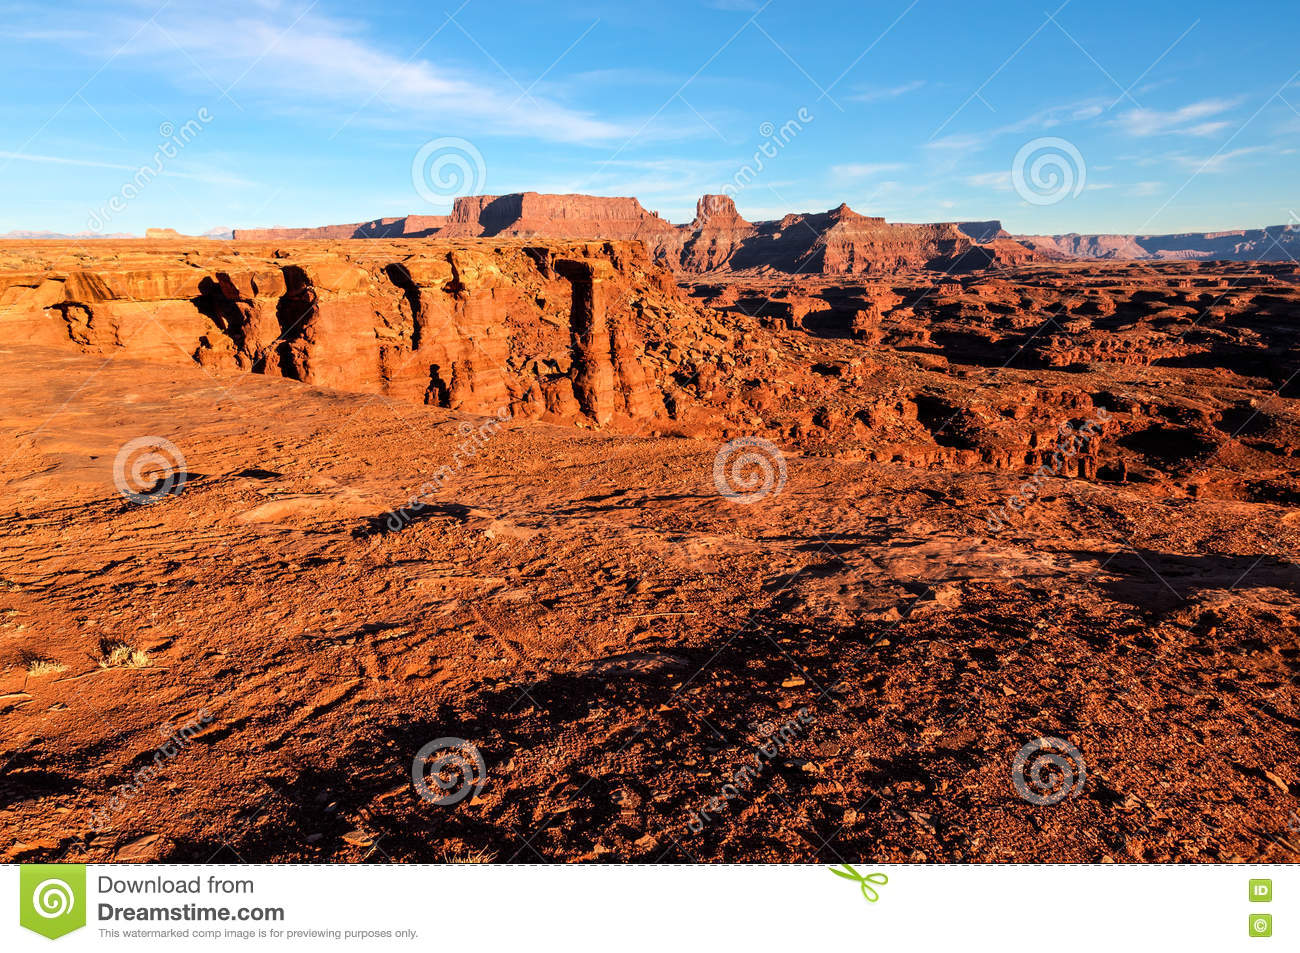 天空的犹他白色外缘路Canyonlands NP-海岛